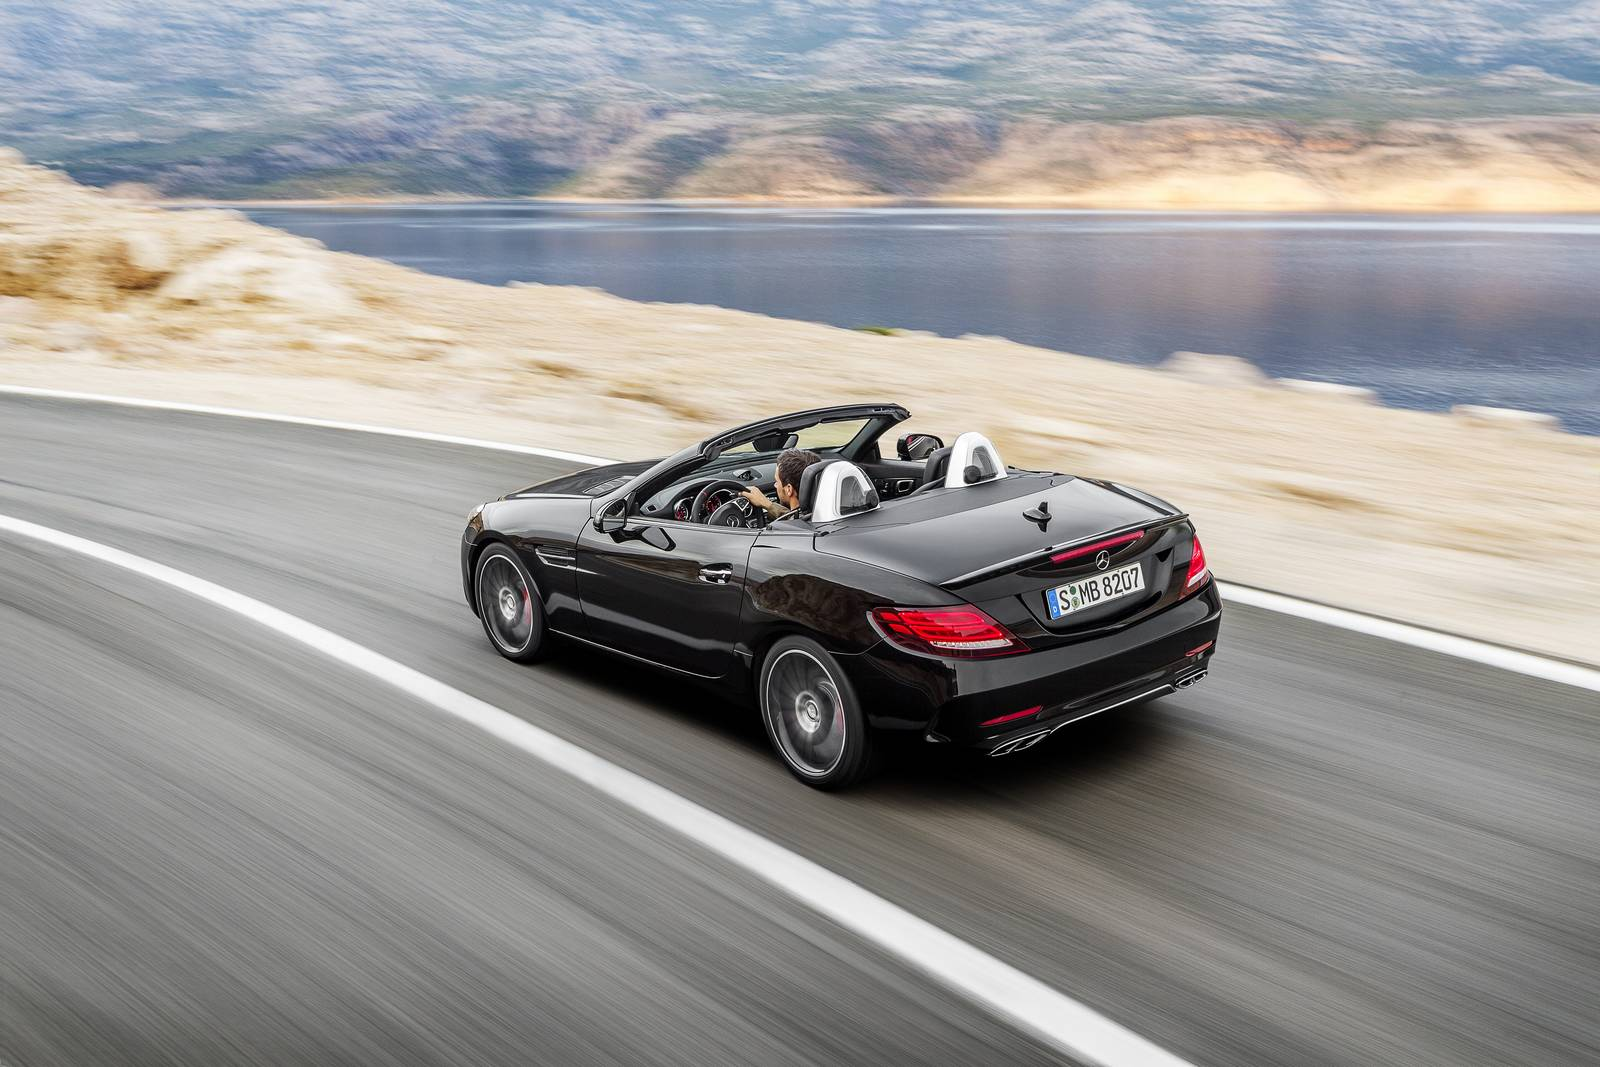 2016 Mercedes-AMG SLC 43 rear view